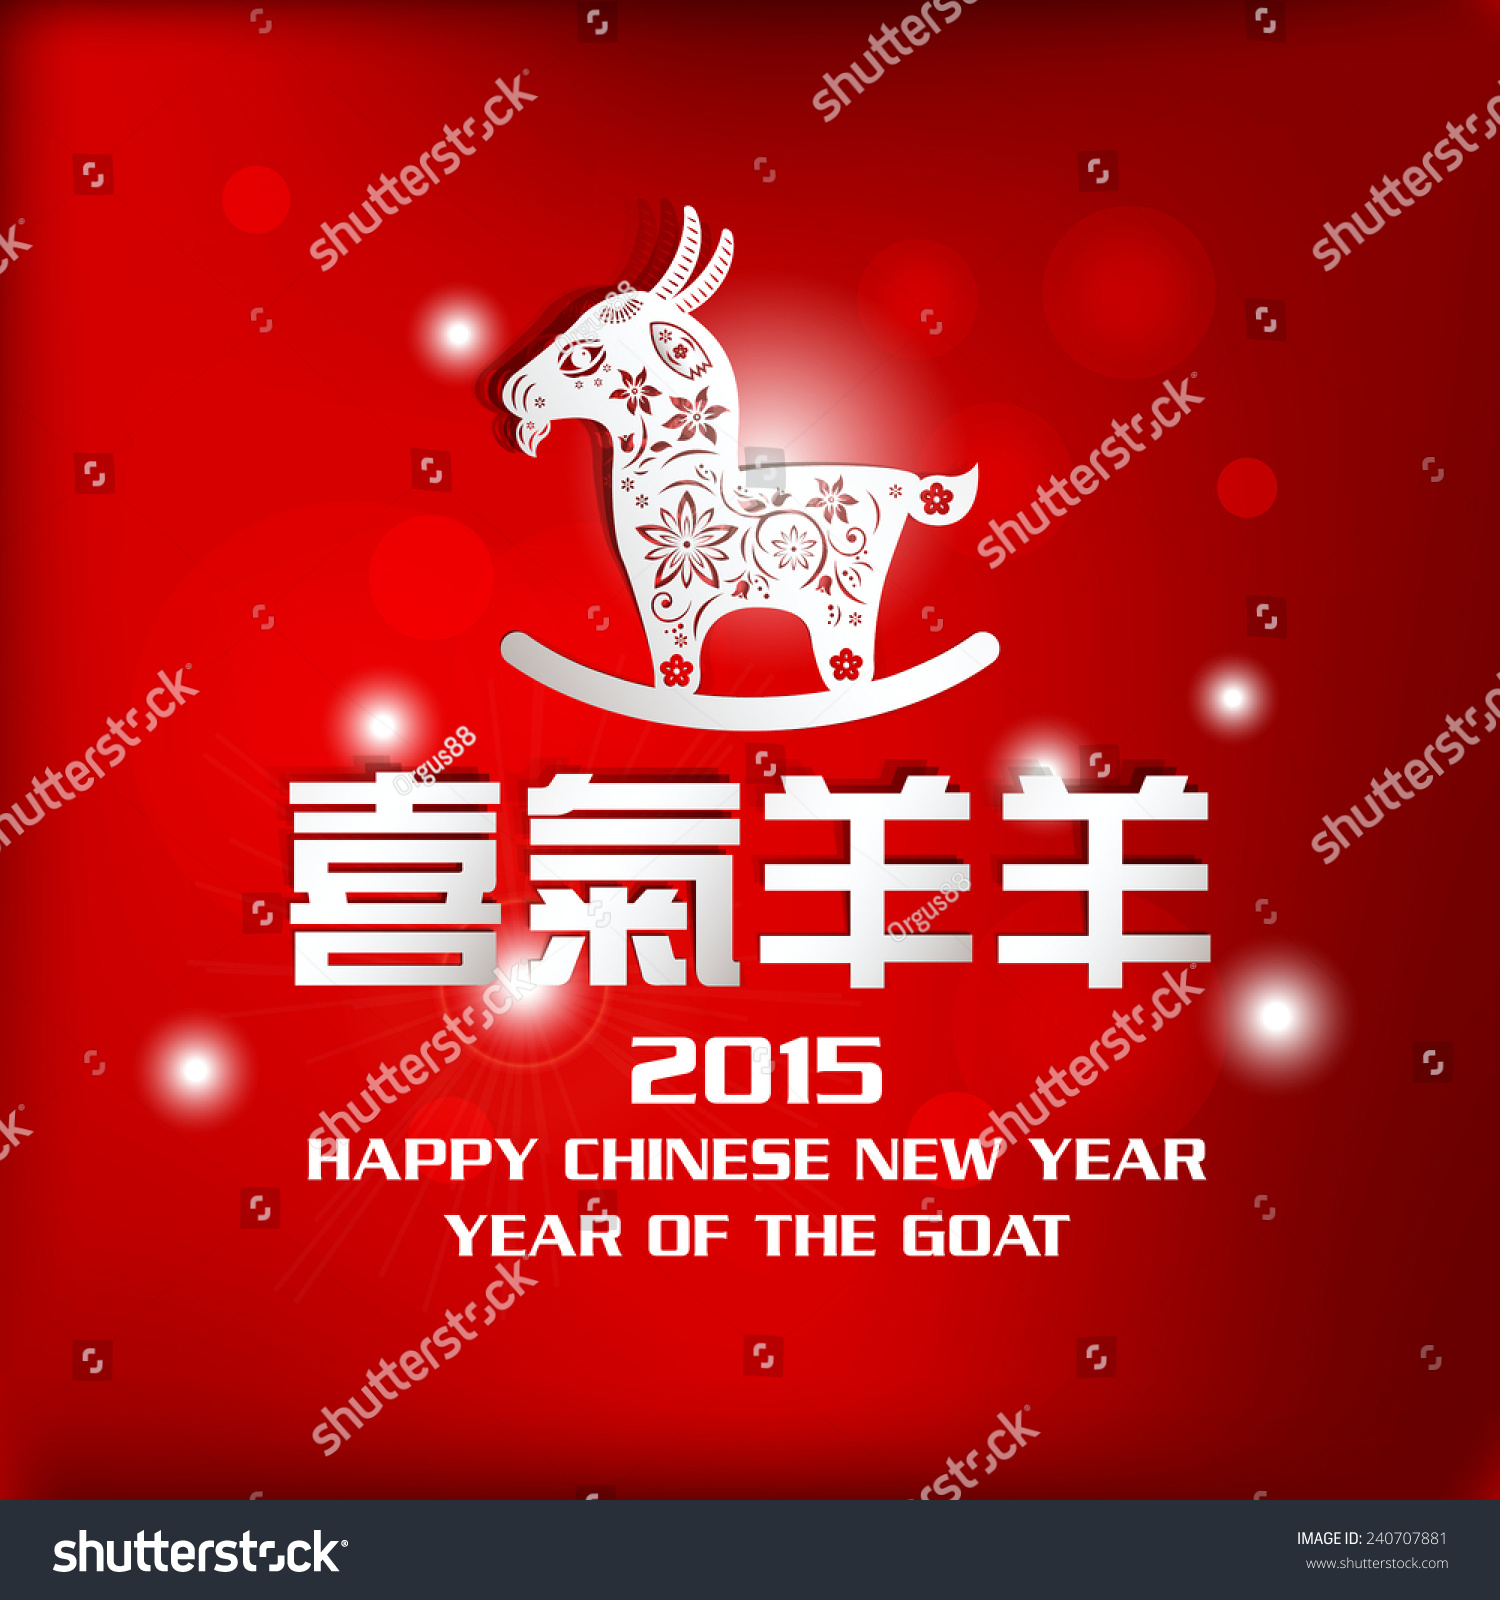 Chinese year goat goat year chinese stock vector 240707881 chinese year of goat goat year chinese zodiac symbol chinese character for translation biocorpaavc Images